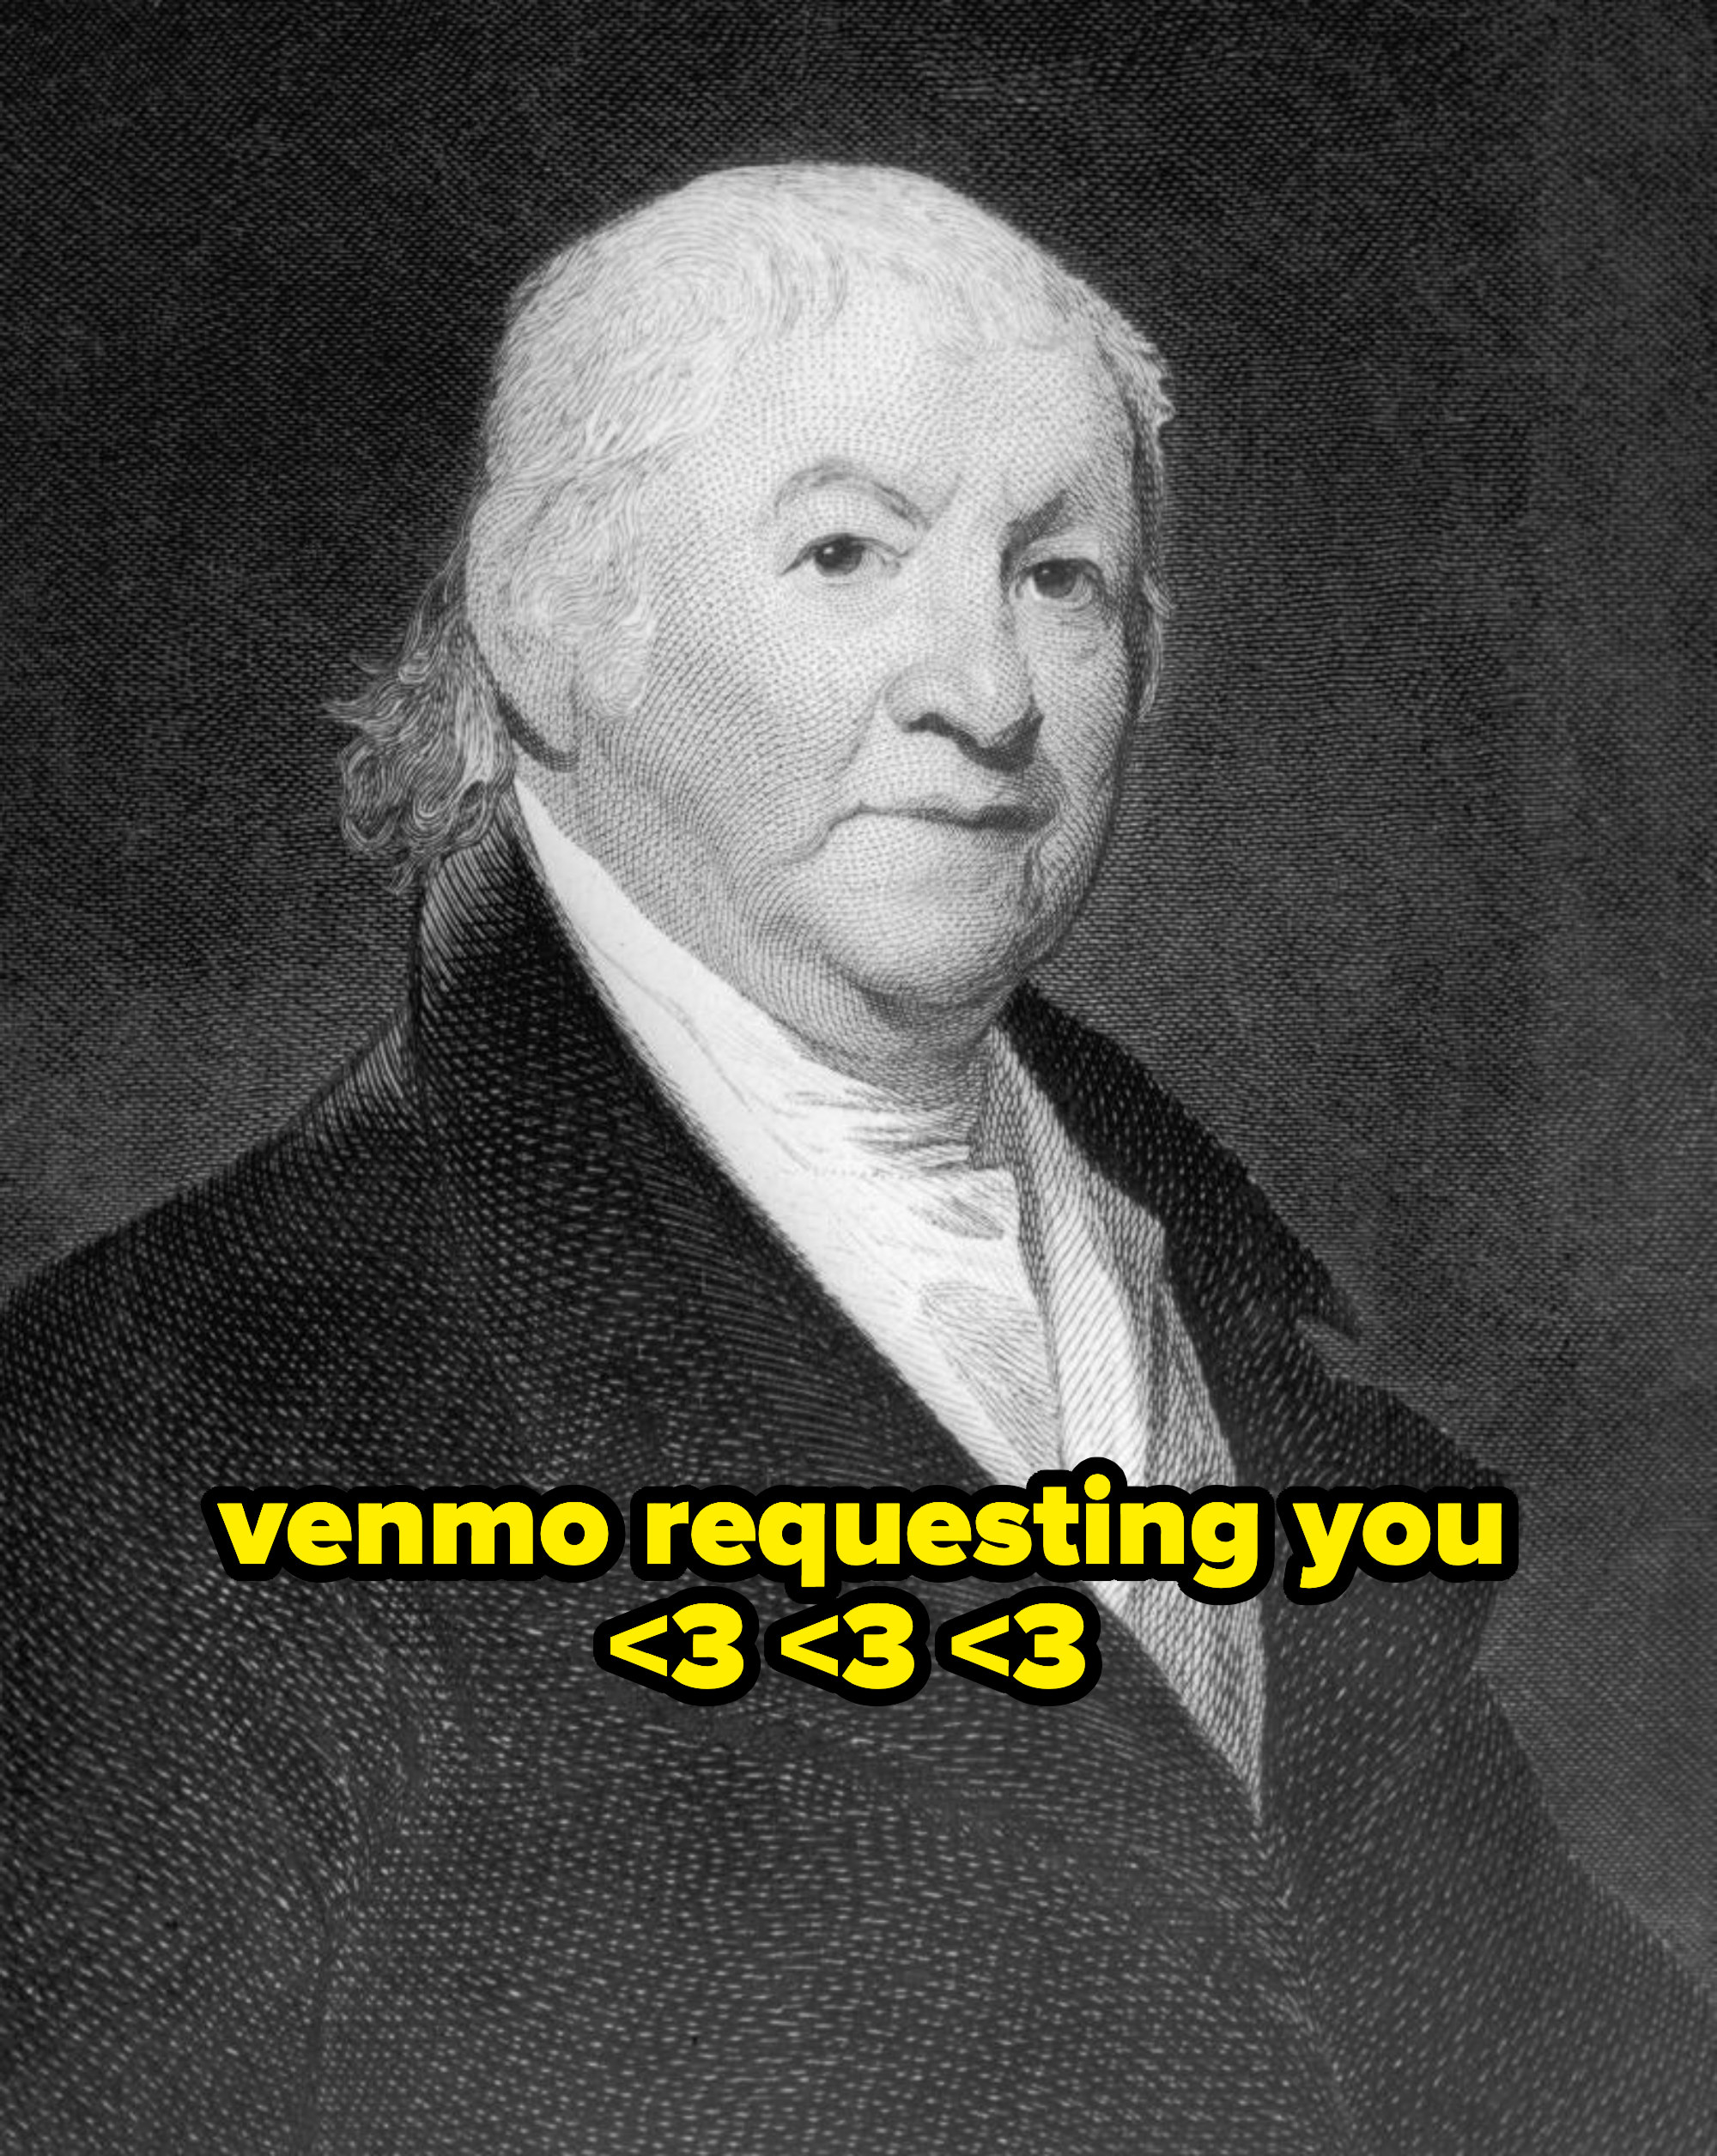 """picture of Paul Revere labeled """"venmo requesting you <3 <3 <3"""""""